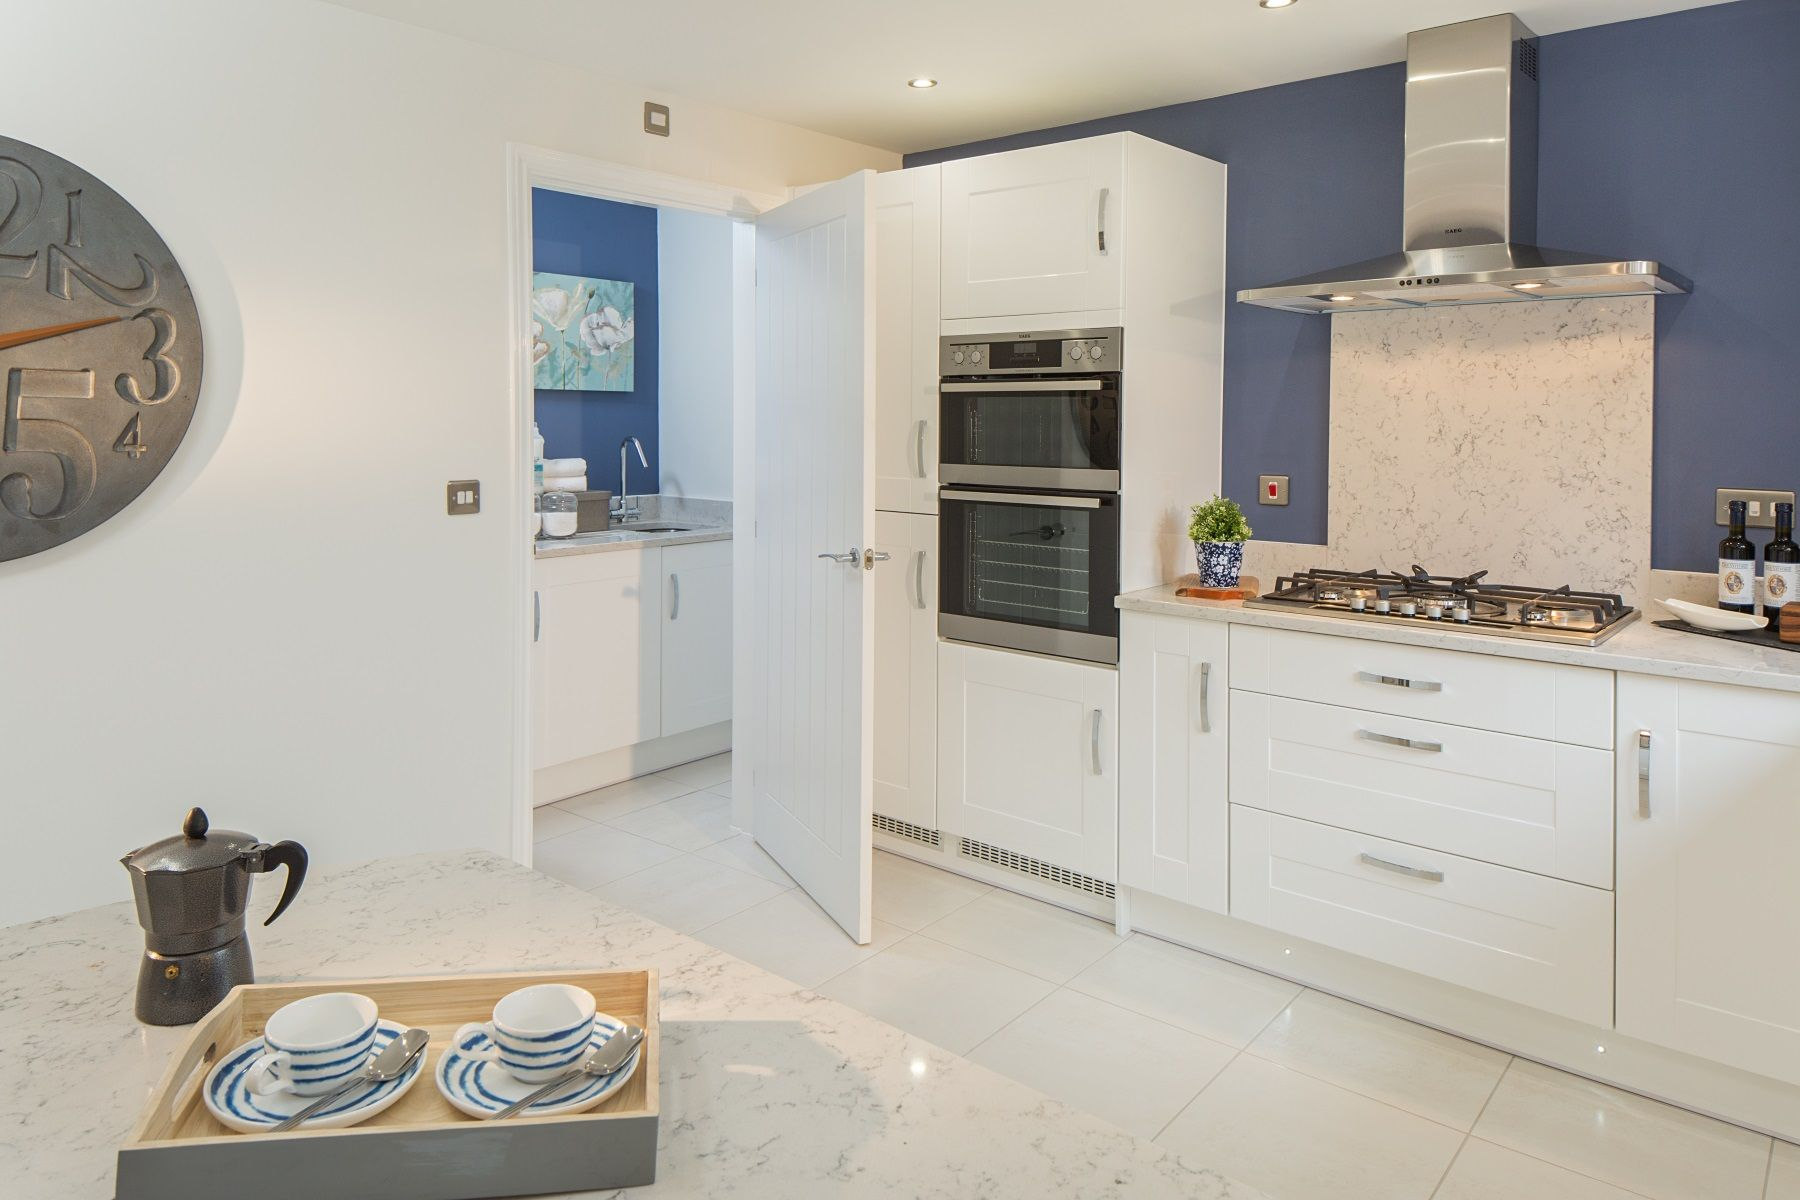 TW Exeter - Plumb Park - Wareham example kitchen 2